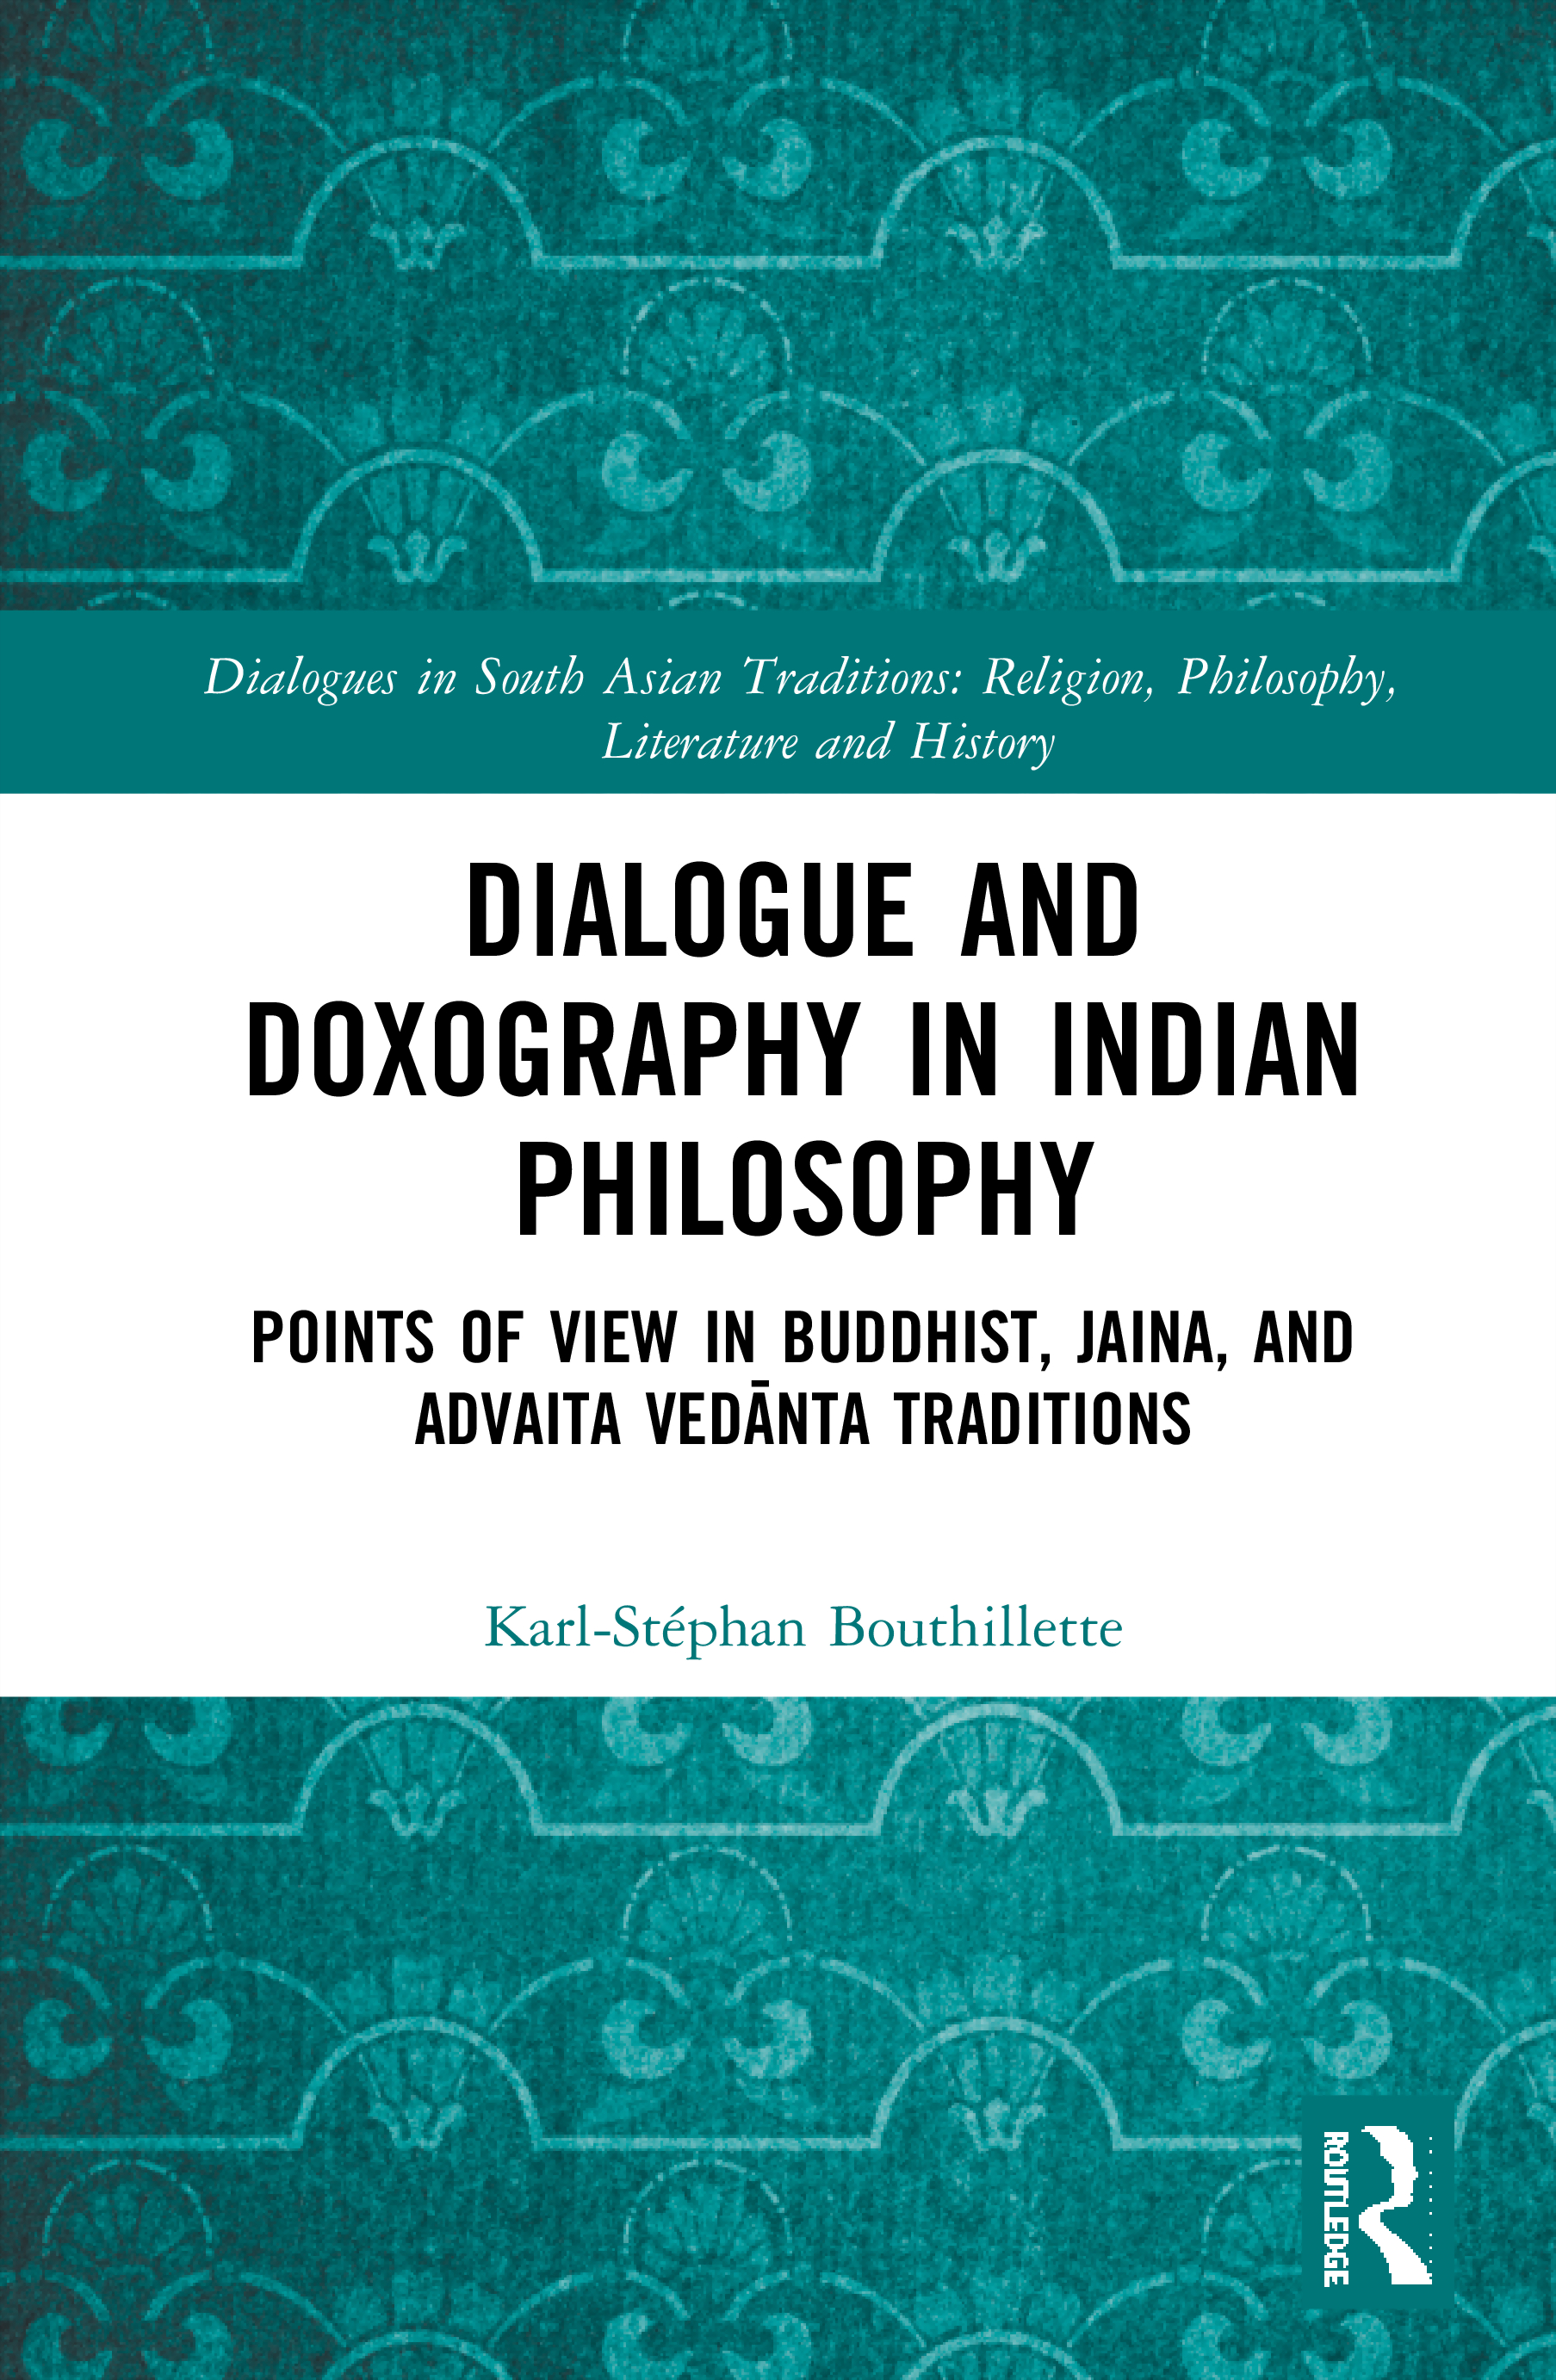 Dialogue and Doxography in Indian Philosophy: Points of View in Buddhist, Jaina, and Advaita Vedānta Traditions book cover